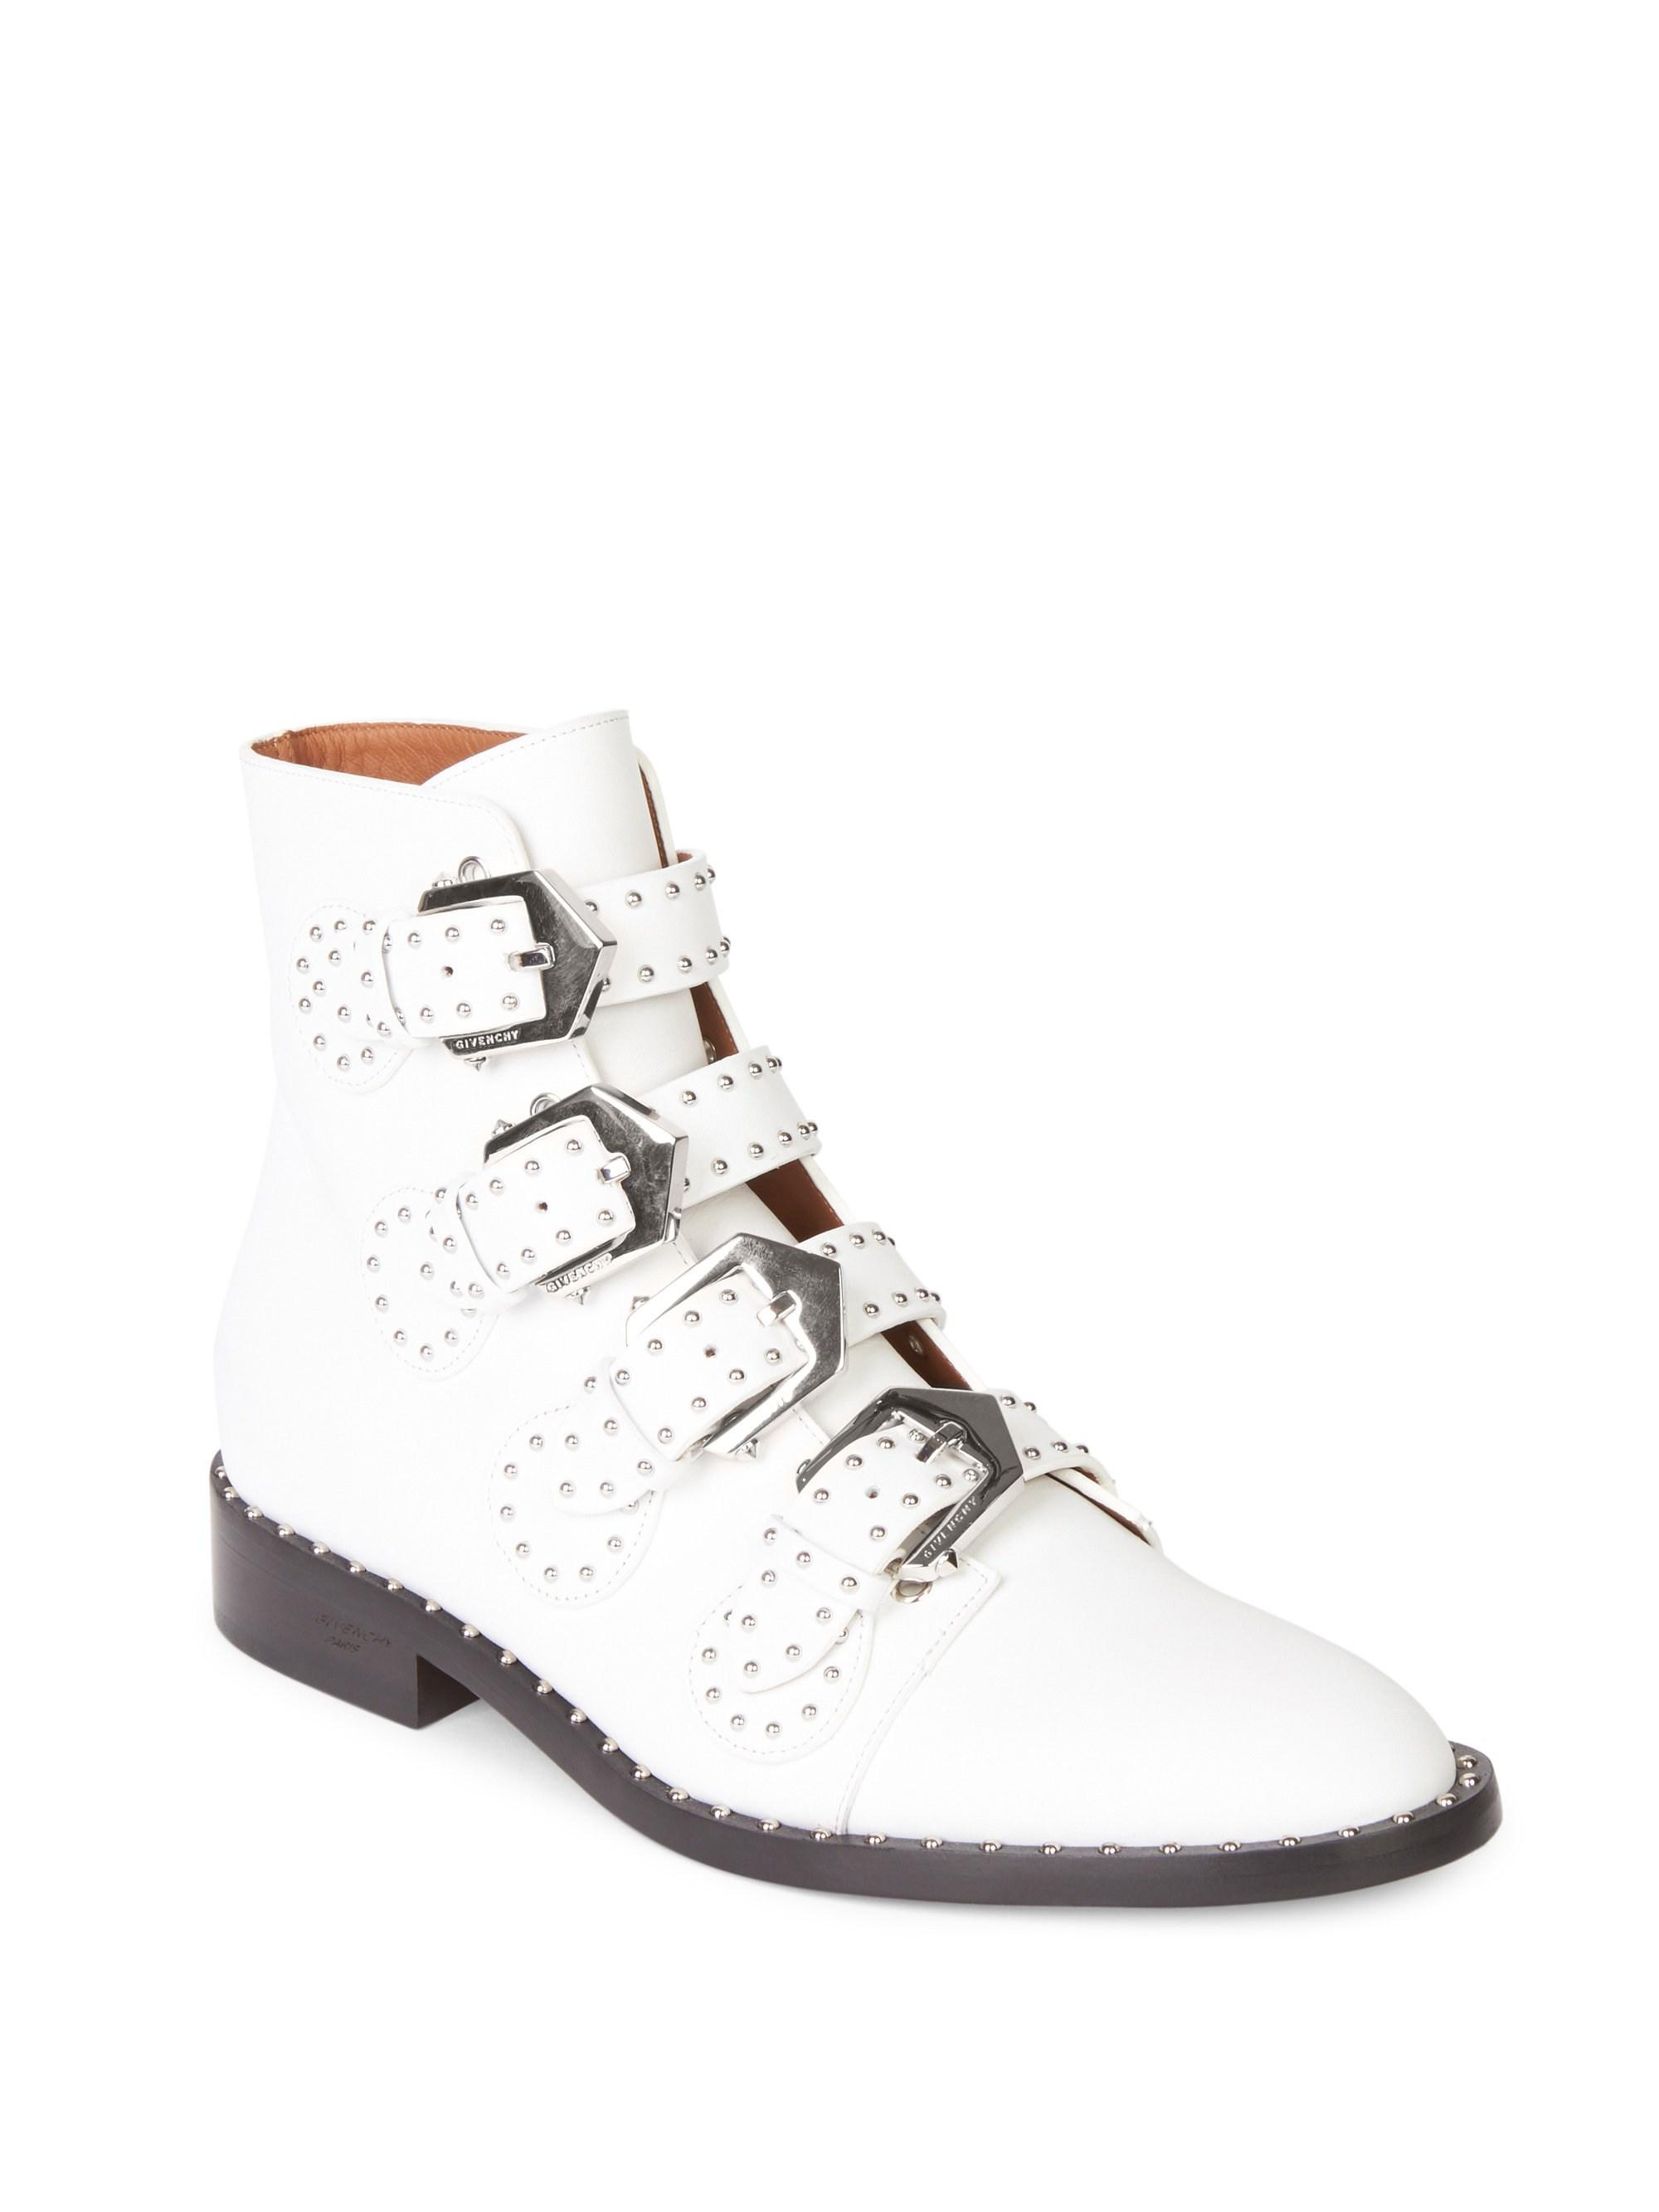 Lyst - Givenchy Studded Leather Buckled Ankle Boots in White fdf652e3c5